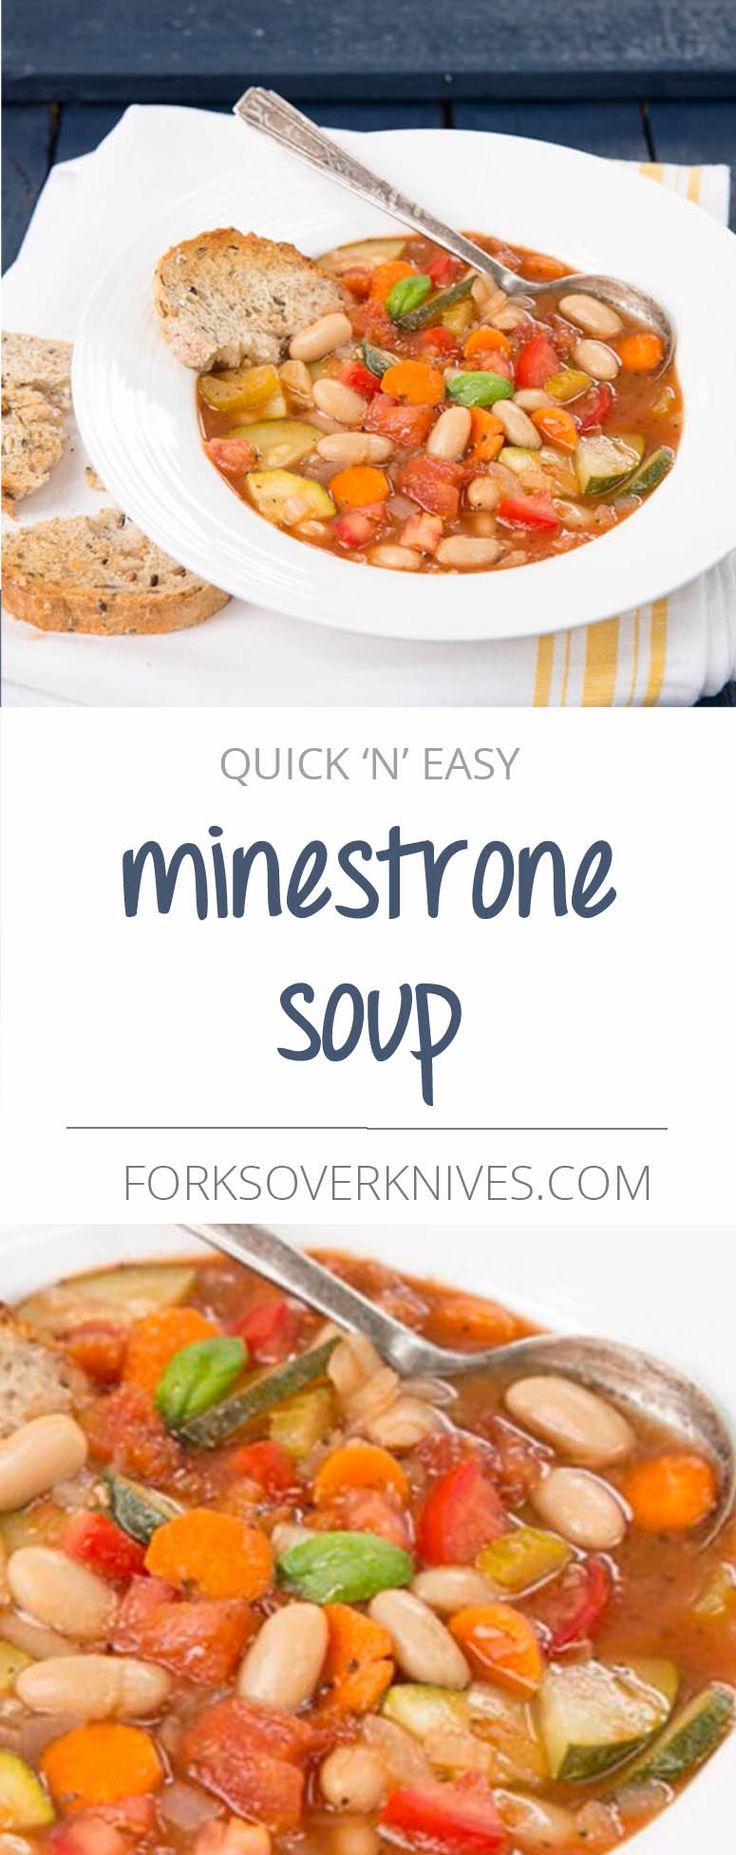 Ridiculously easy? Check. Incredibly flavorful and satisfying? Double check! This is a delicious, make-it-your-own Italian vegetable soup. Add any vegetables or beans you want to use up, or a small amount of cooked rice or pasta—just place it in the...  Read more